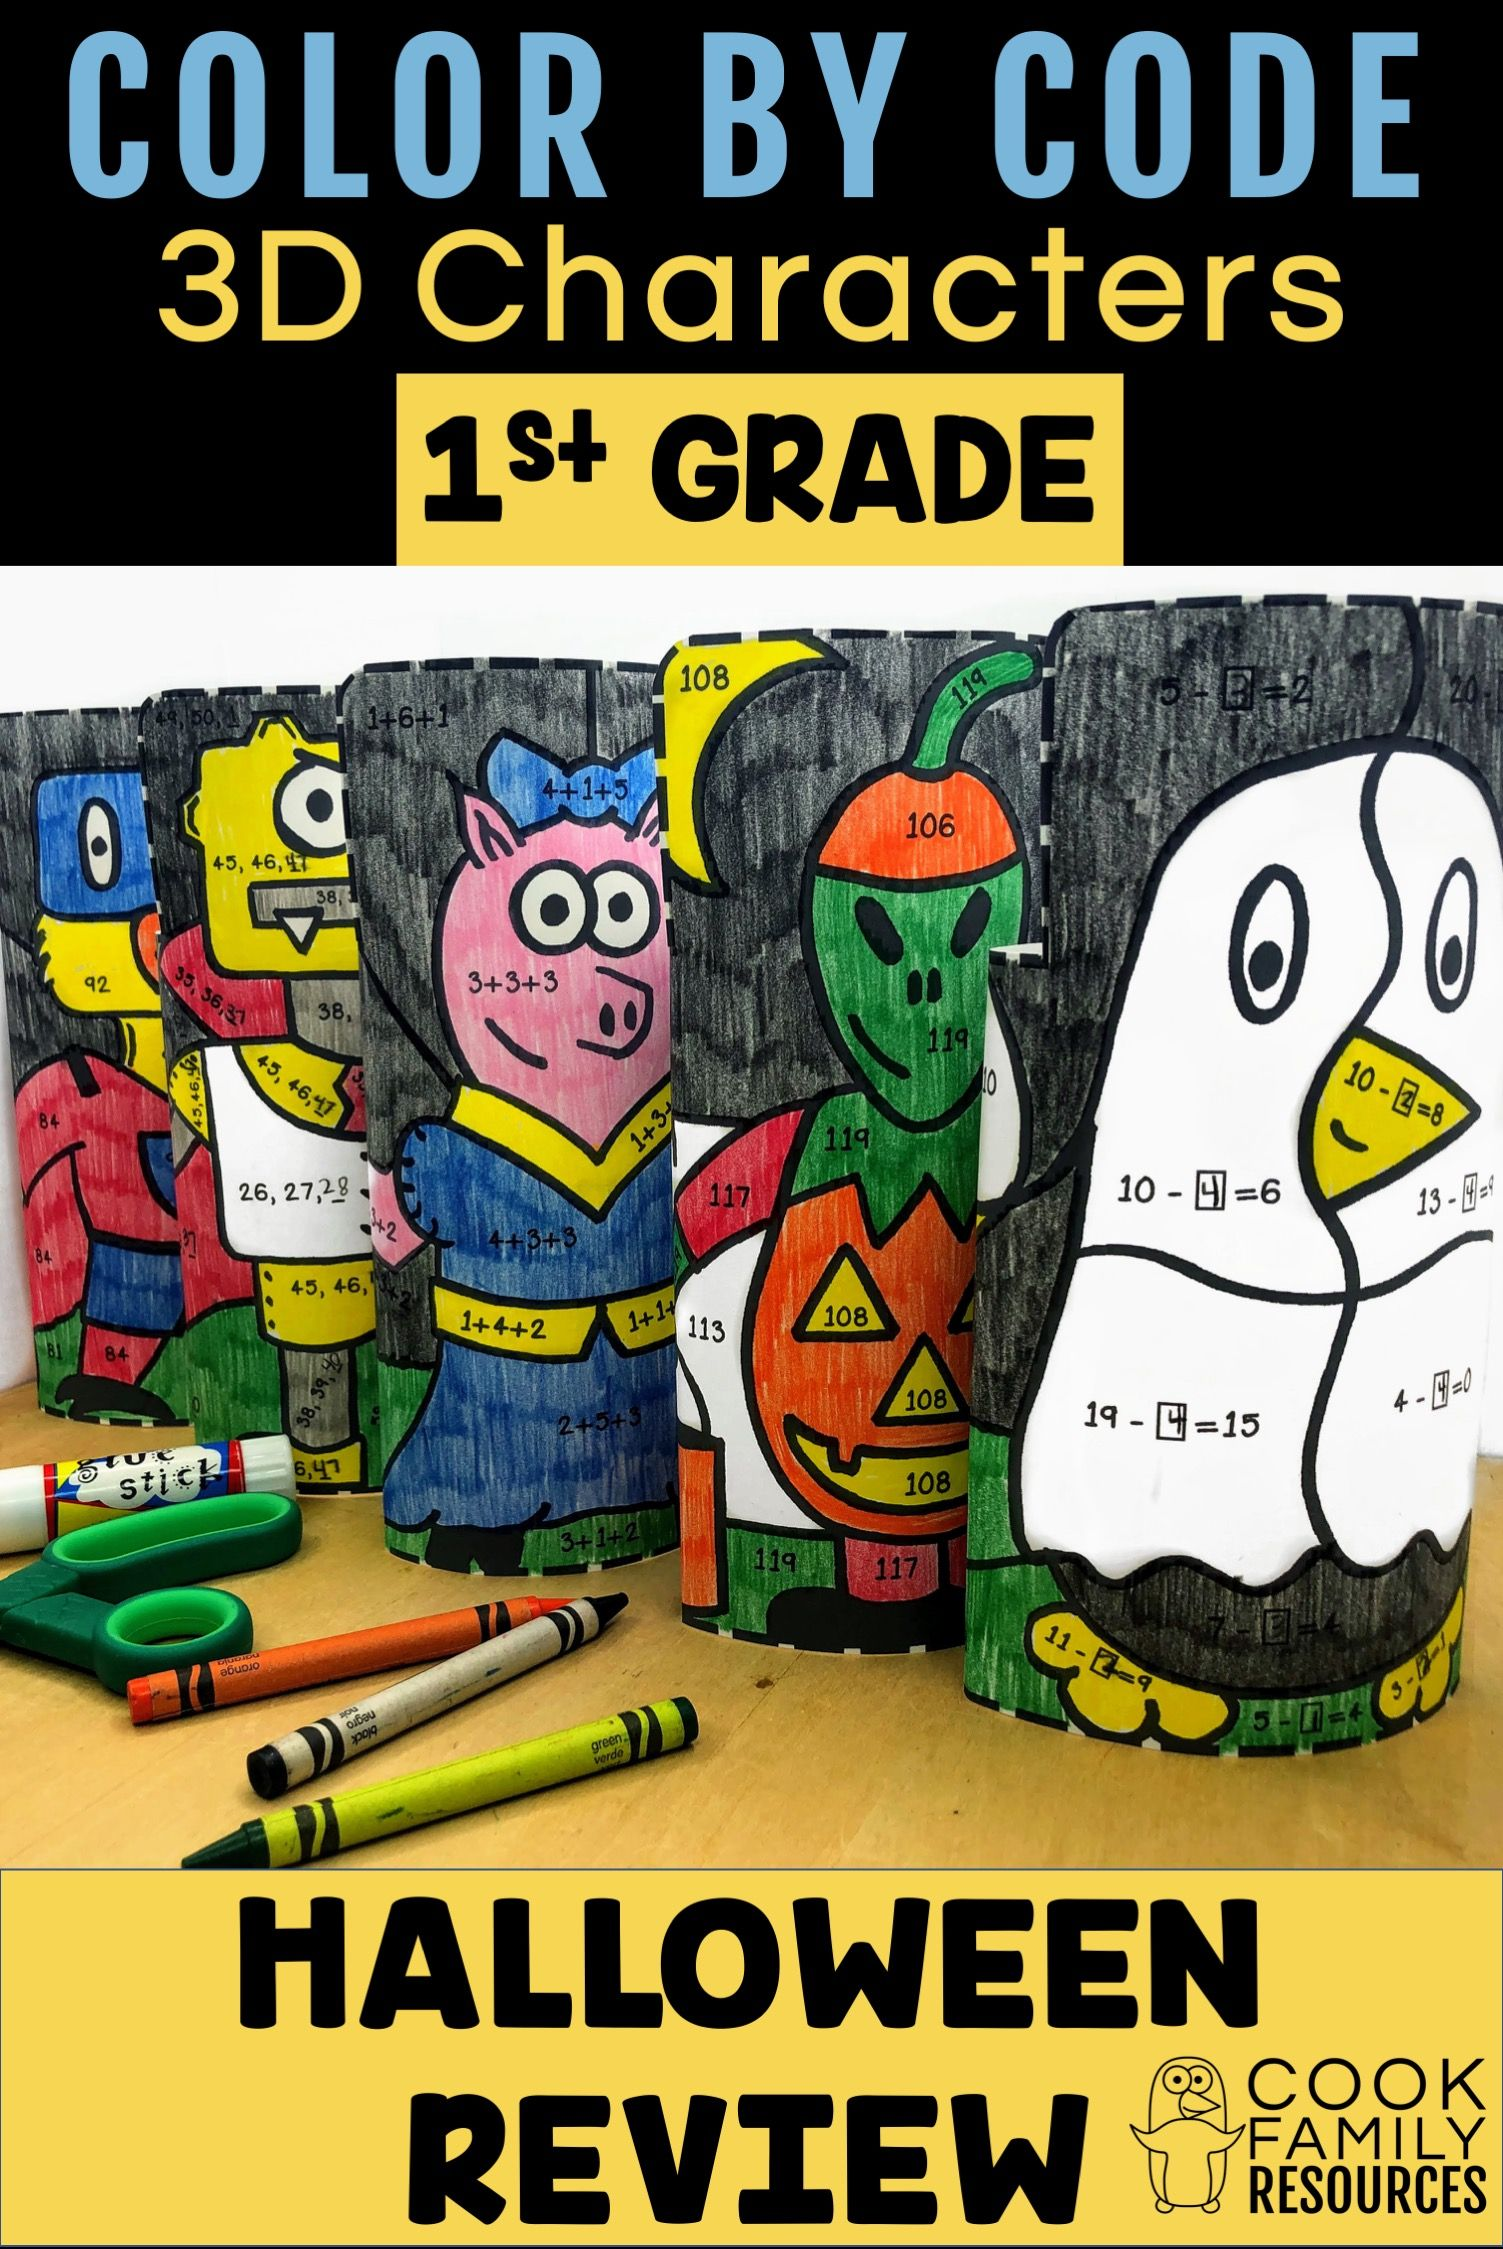 Your 1st Grade Students Will Love Seeing These Color By